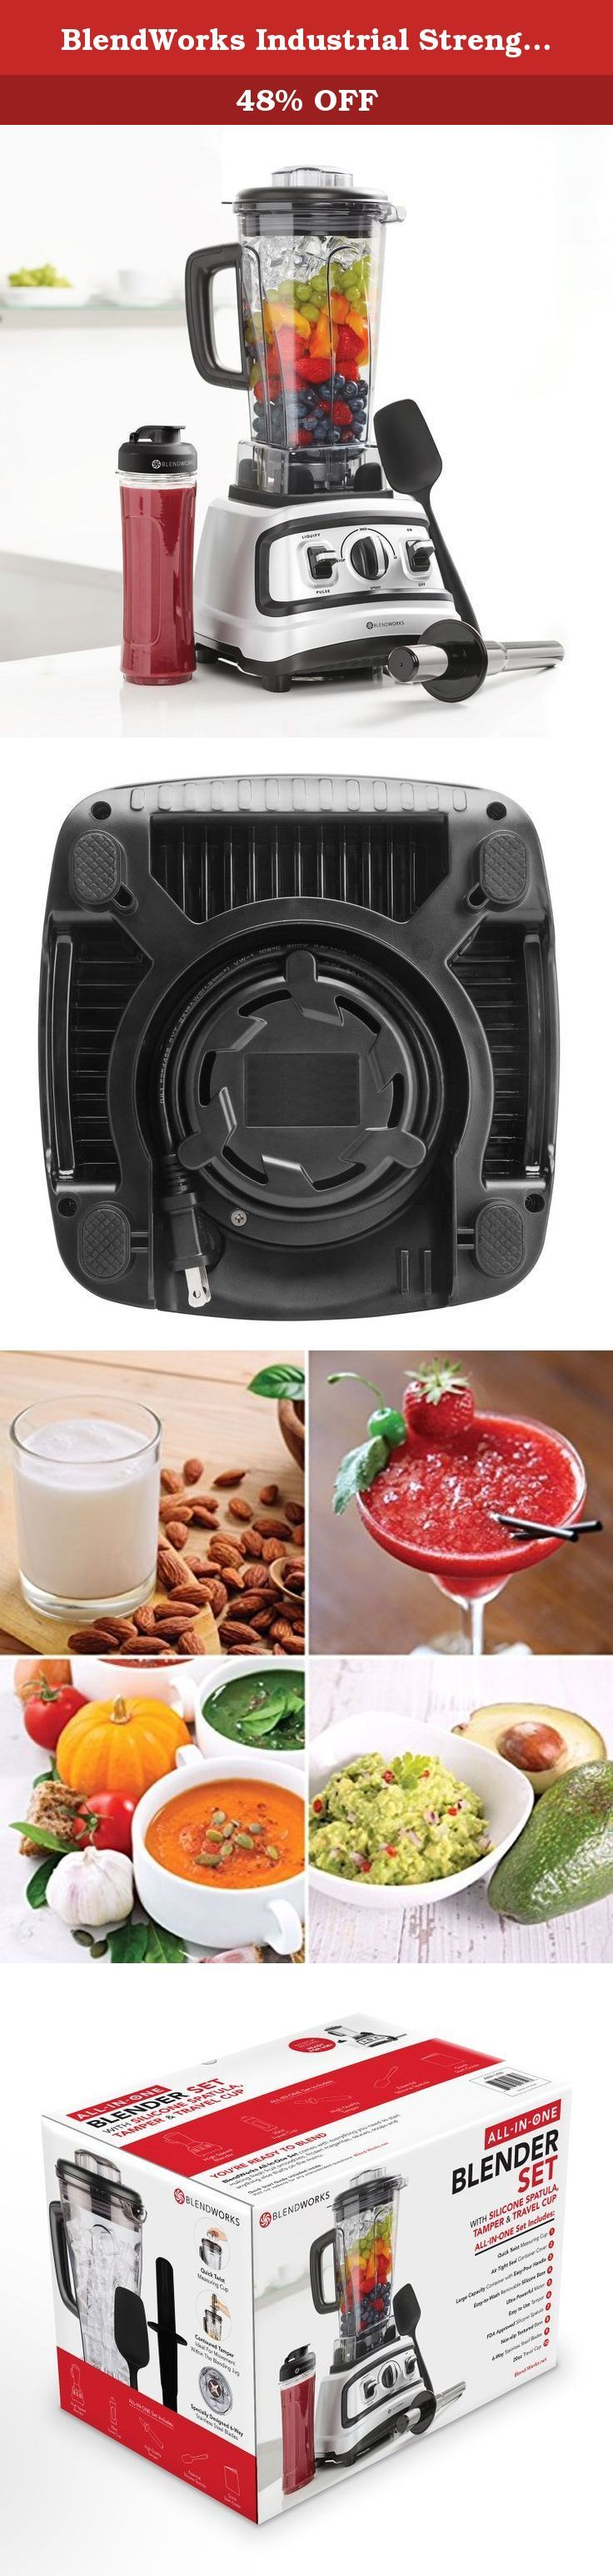 BlendWorks Industrial Strength Professional Food Processor/Blender Set- INCLUDES 4 Pcs: High Speed Blender, Silicone Spatula, Accelerator/Tamper & 20 oz Travel Cup. READY TO BLEND! No setup required! *BlendWorks All-In-One Set comes with everything you need to start making fresh fruit smoothies, frozen margaritas, sauces, soups, and anything else that's on the menu! * Featured Highlights: Industrial-Grade High Speed Motor - specially-designed 6-way stainless steel blades. Large Capacity...